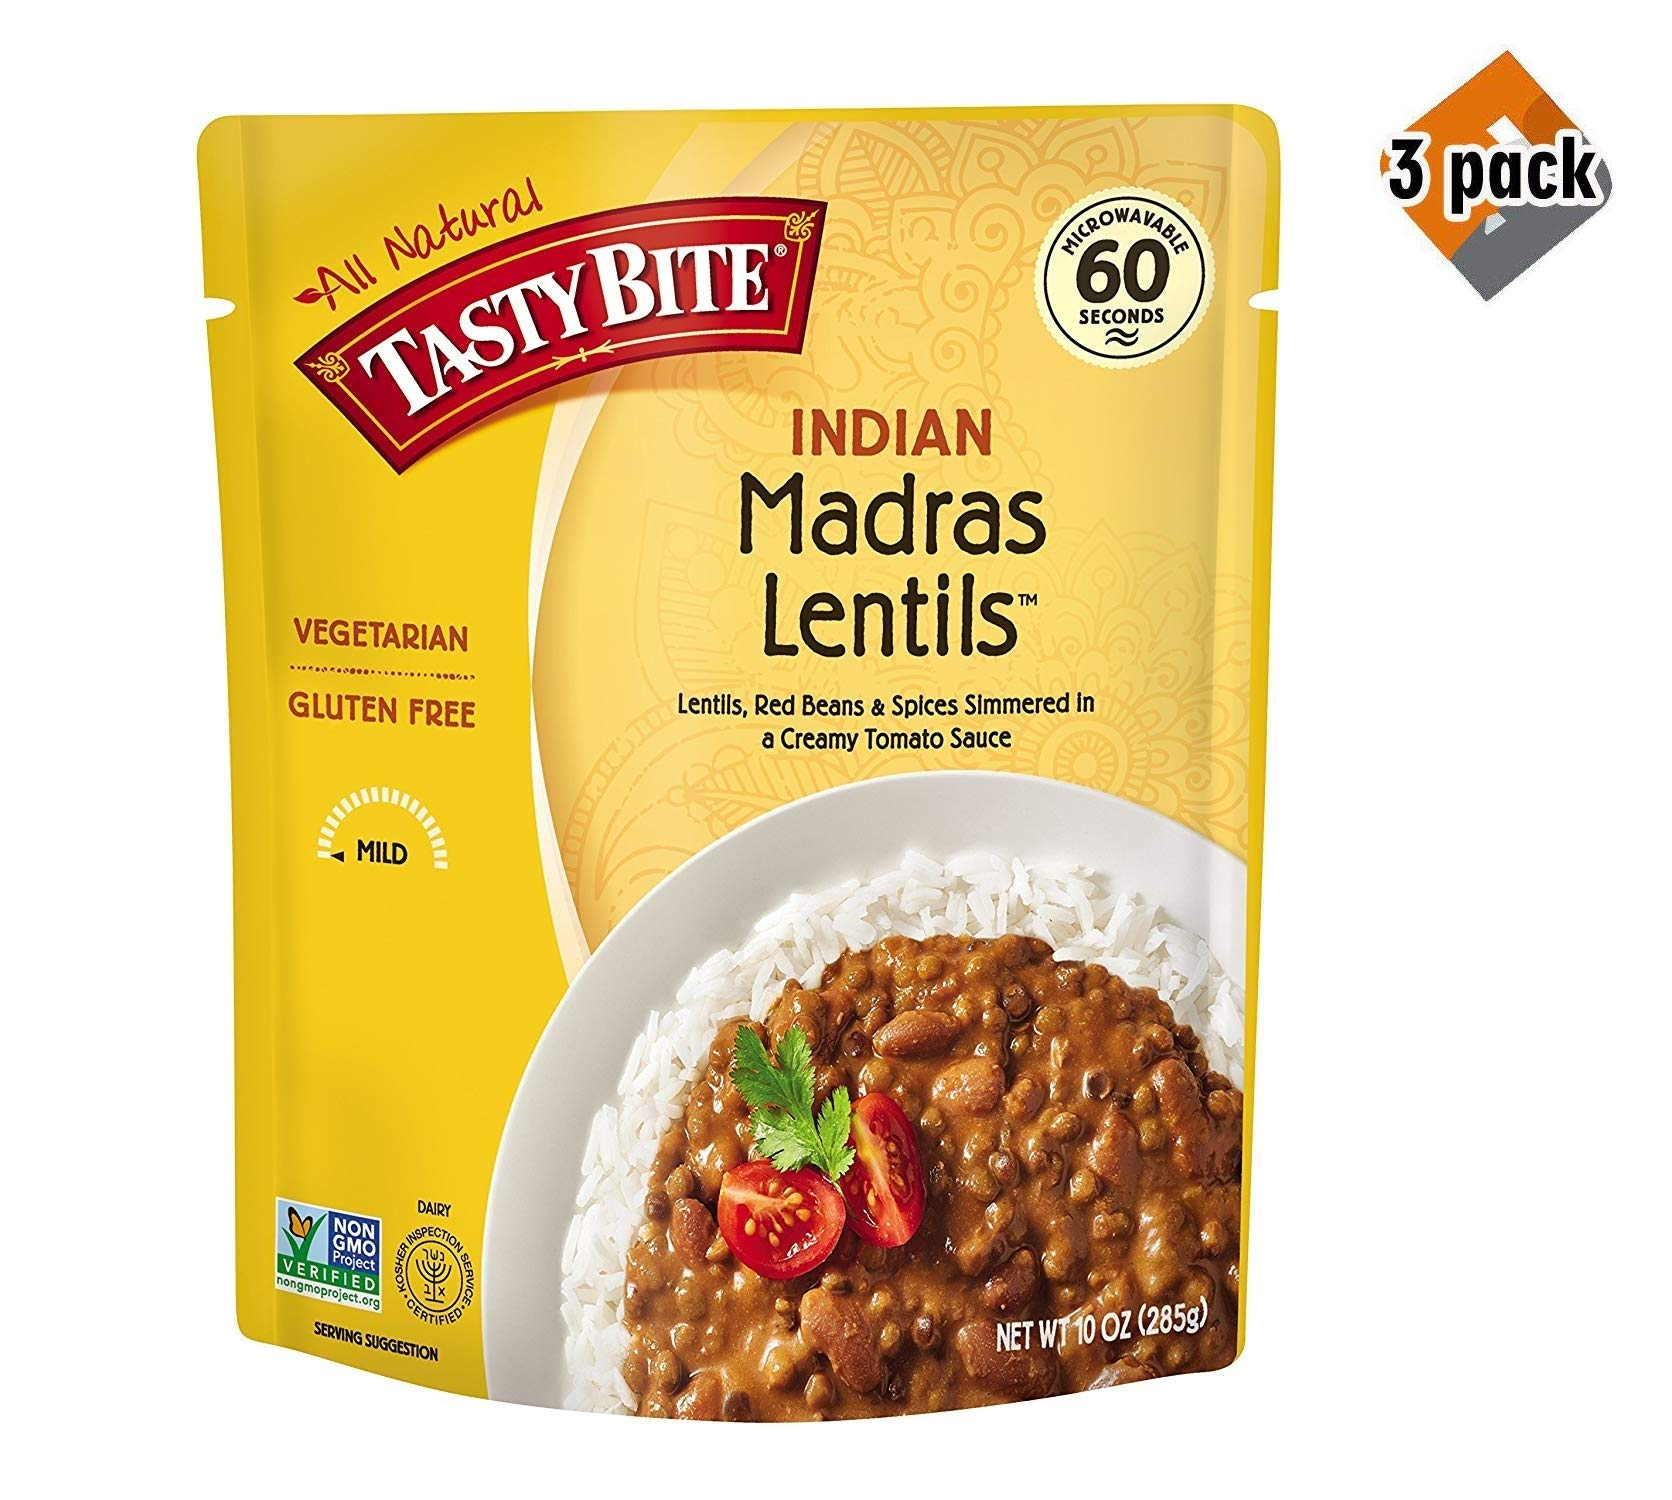 Tasty Bite Indian Entree Madras Lentils 10 Ounce (Pack of 6), Fully Cooked Indian Entrée with Lentils Red Beans & Spices in a Creamy Tomato Sauce, Microwaveable, Ready to Eat - 3 Pack